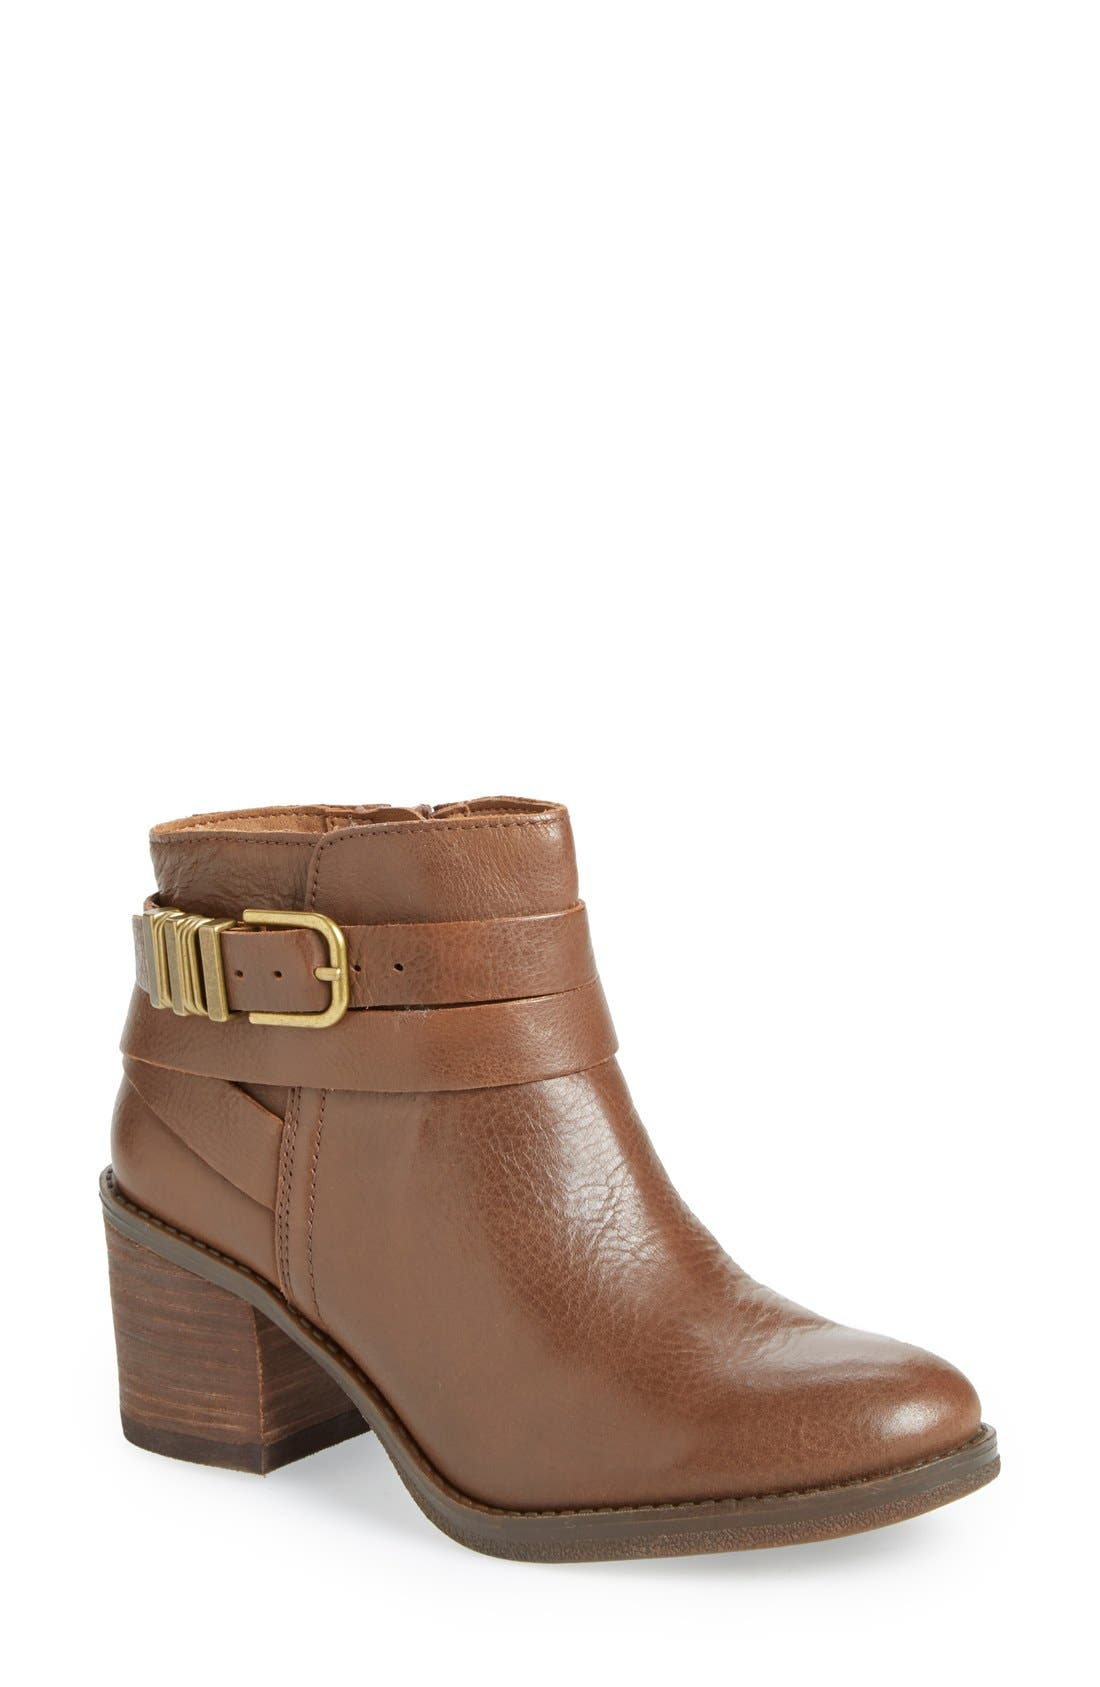 Alternate Image 1 Selected - Lucky Brand 'Raisa' Moto Bootie (Women)